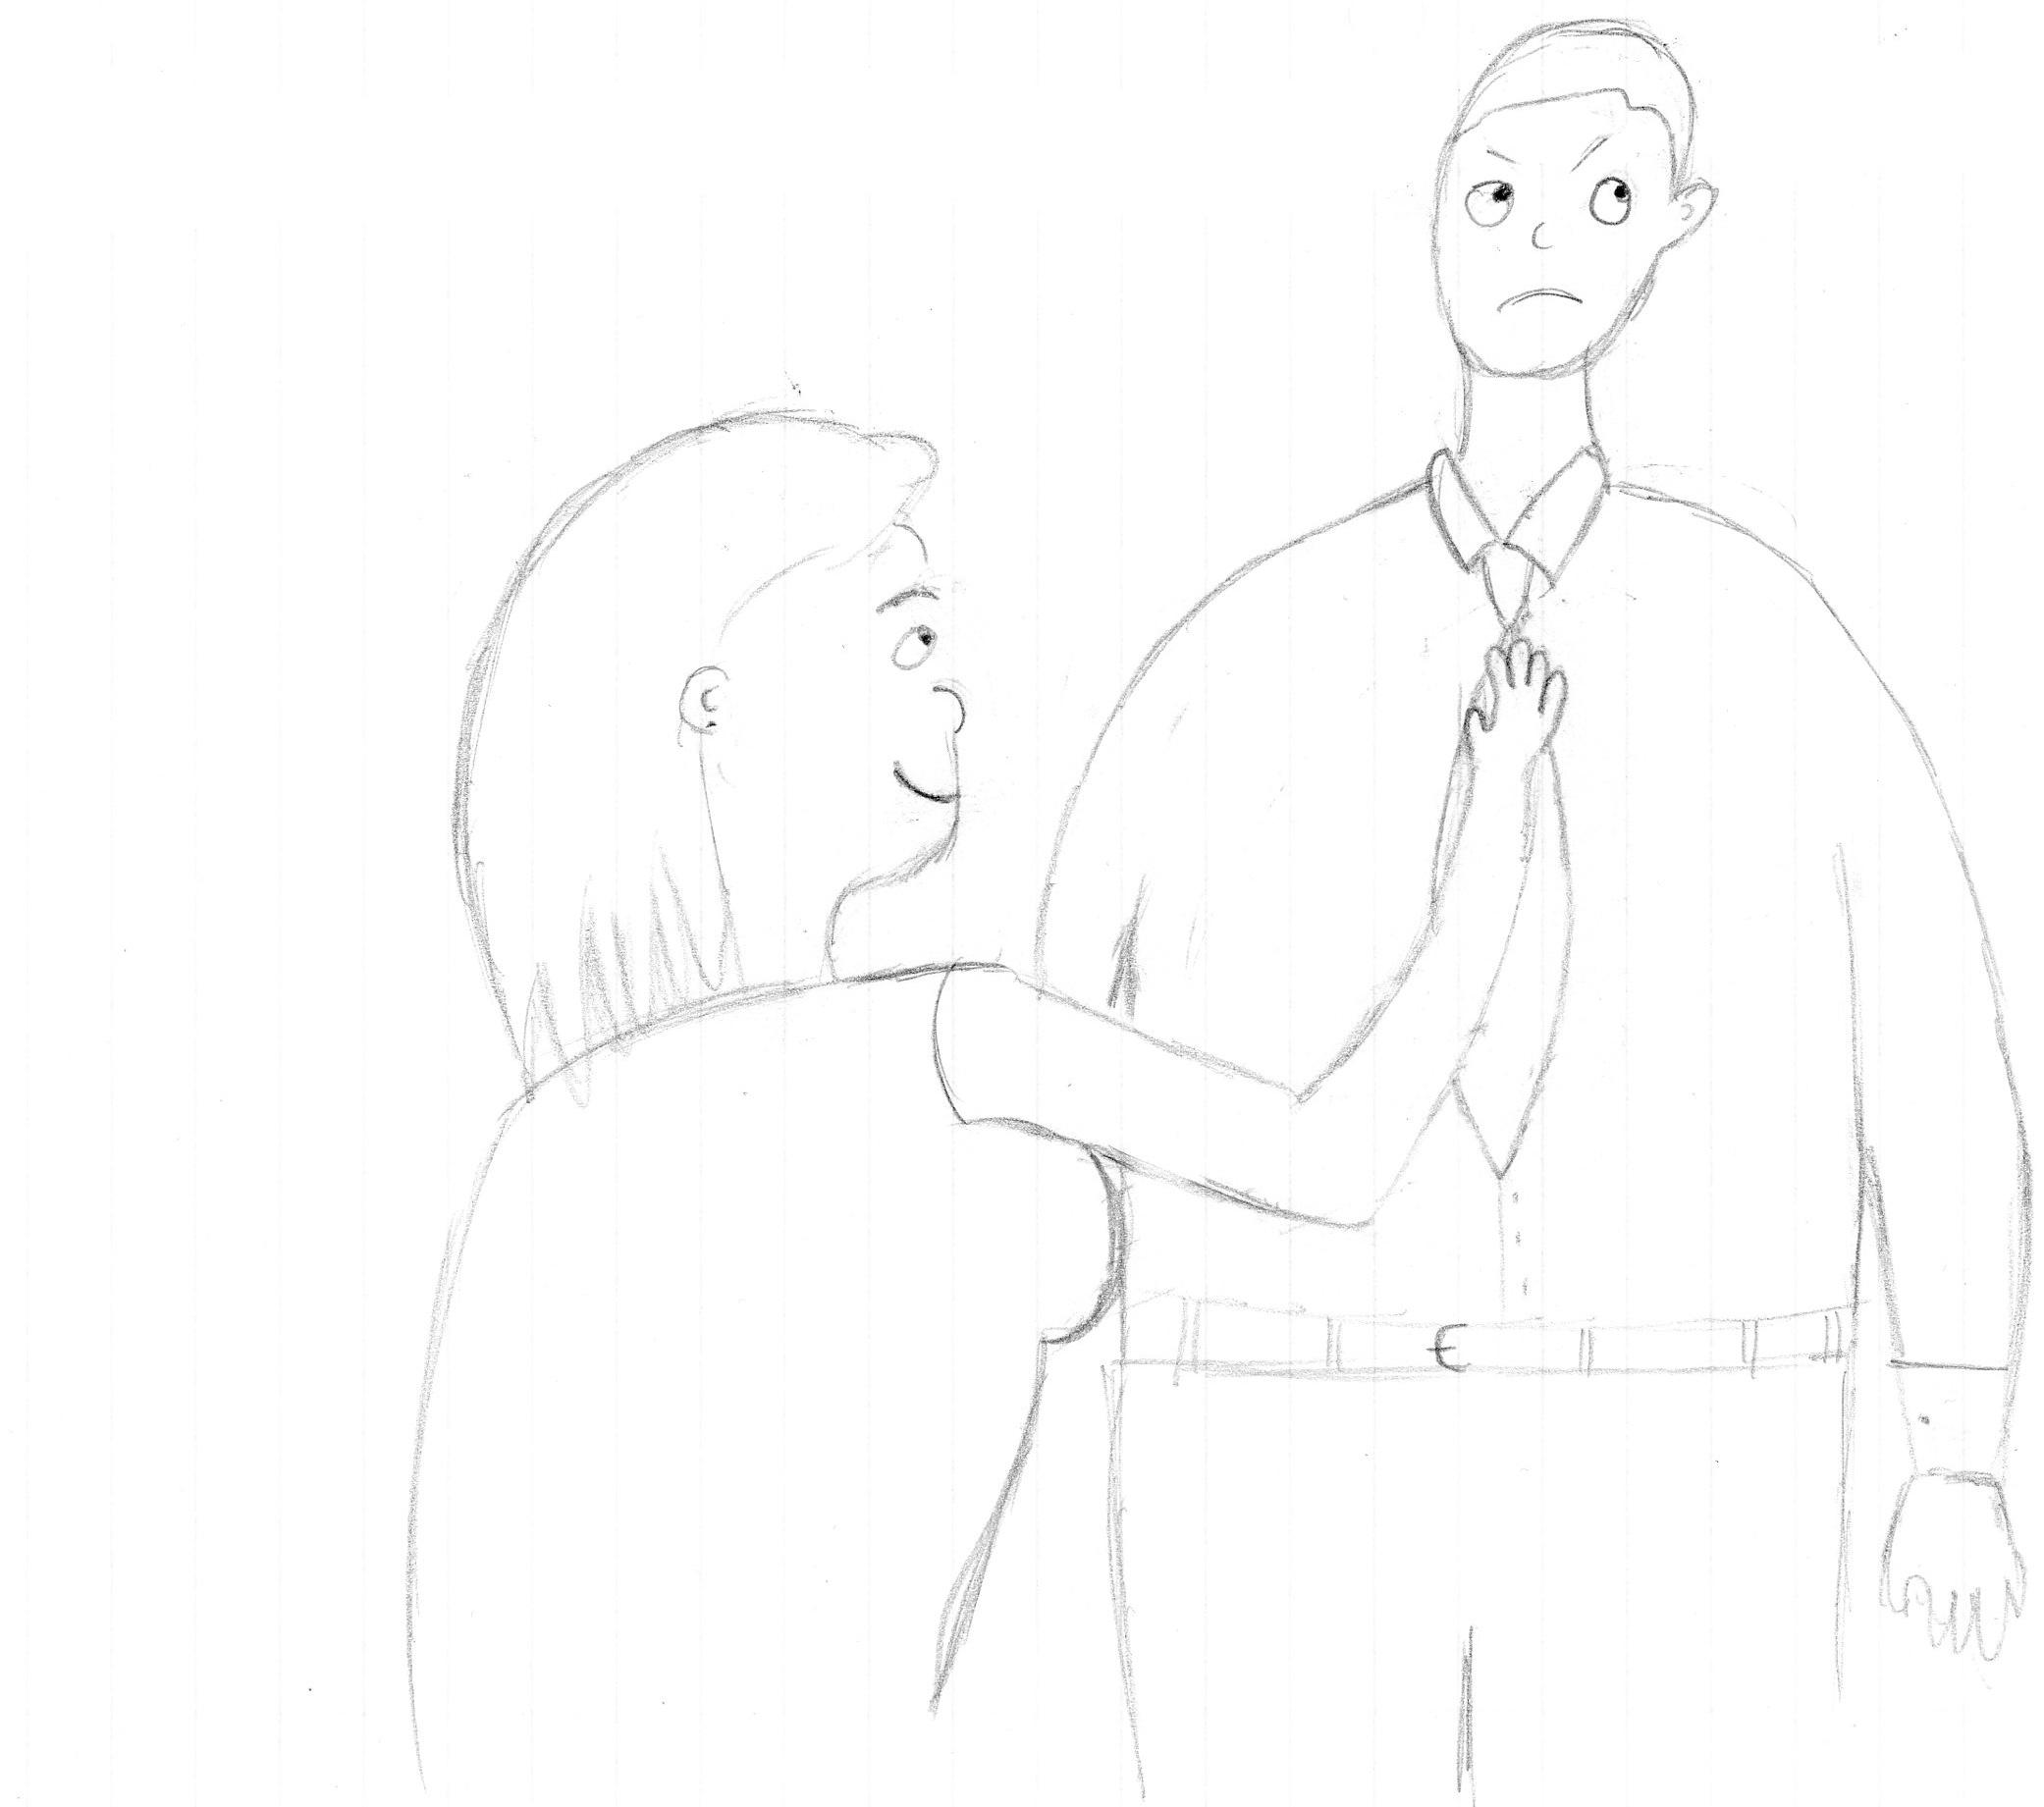 In the drawing, the mom fixes her son's tie while he is annoyed she is trying to run his prom as her own.